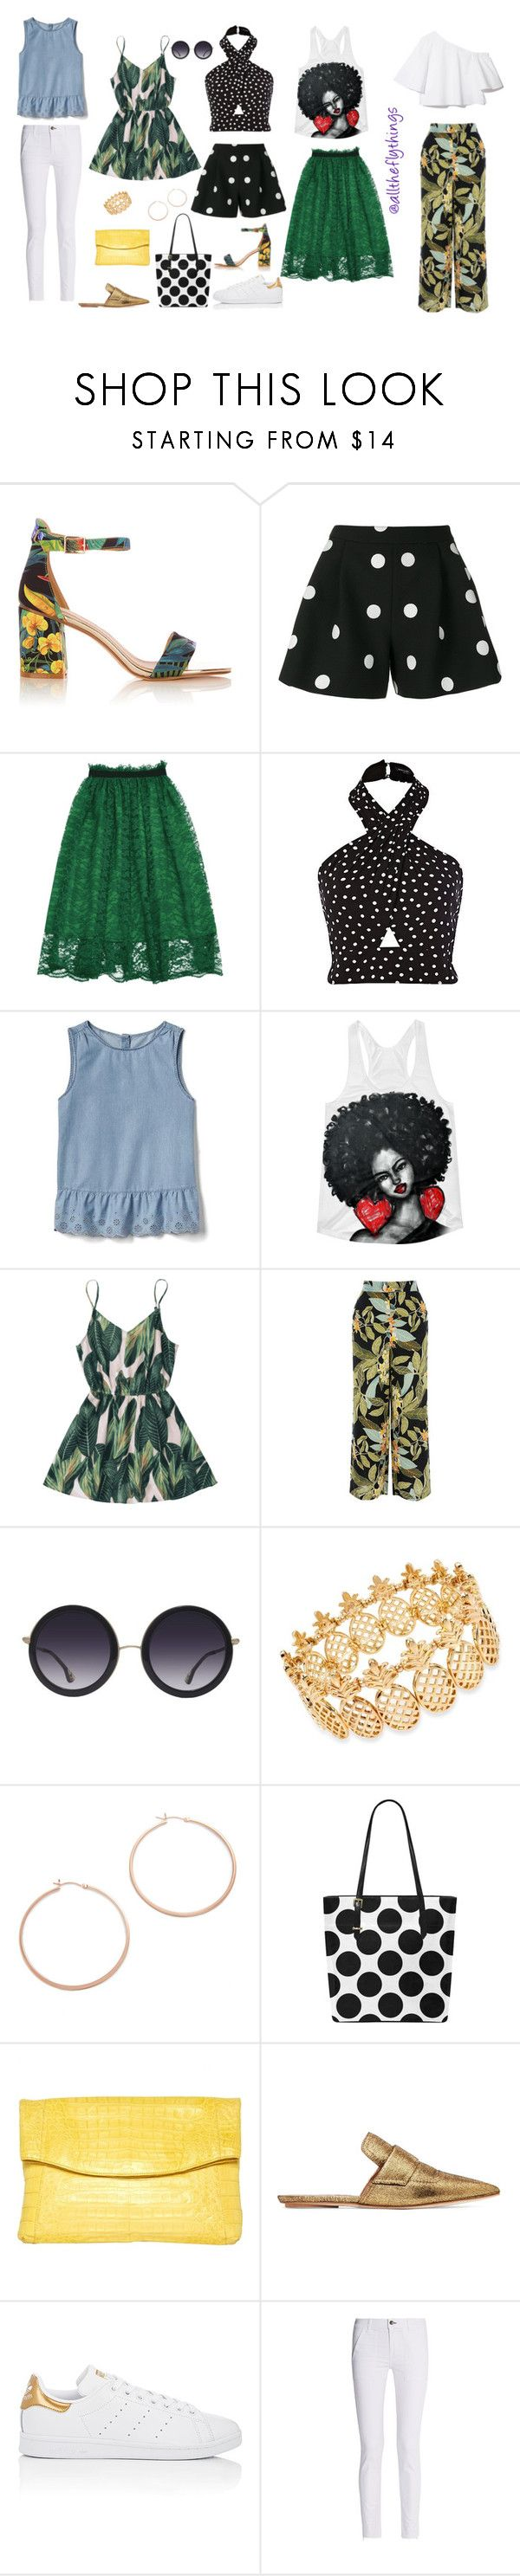 """Vacay Wear: the Remix pt 2"" by all-the-fly-things on Polyvore featuring Boutique Moschino, Gap, Warehouse, Alice + Olivia, INC International Concepts, Jennifer Zeuner, Nancy Gonzalez, Marni, adidas and rag & bone"